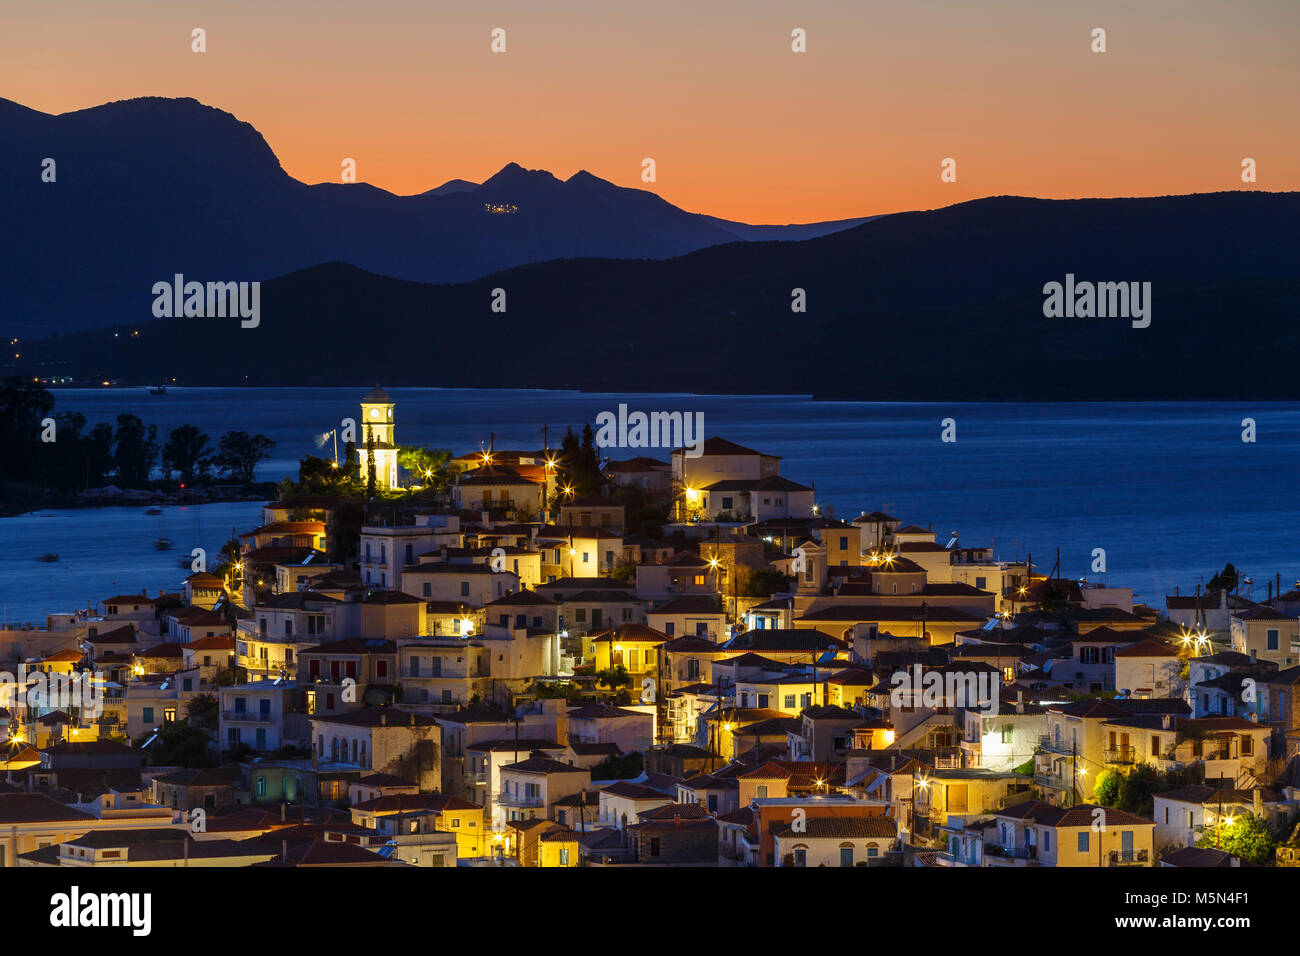 View of Poros island and mountains of Peloponnese peninsula in Greece. Stock Photo